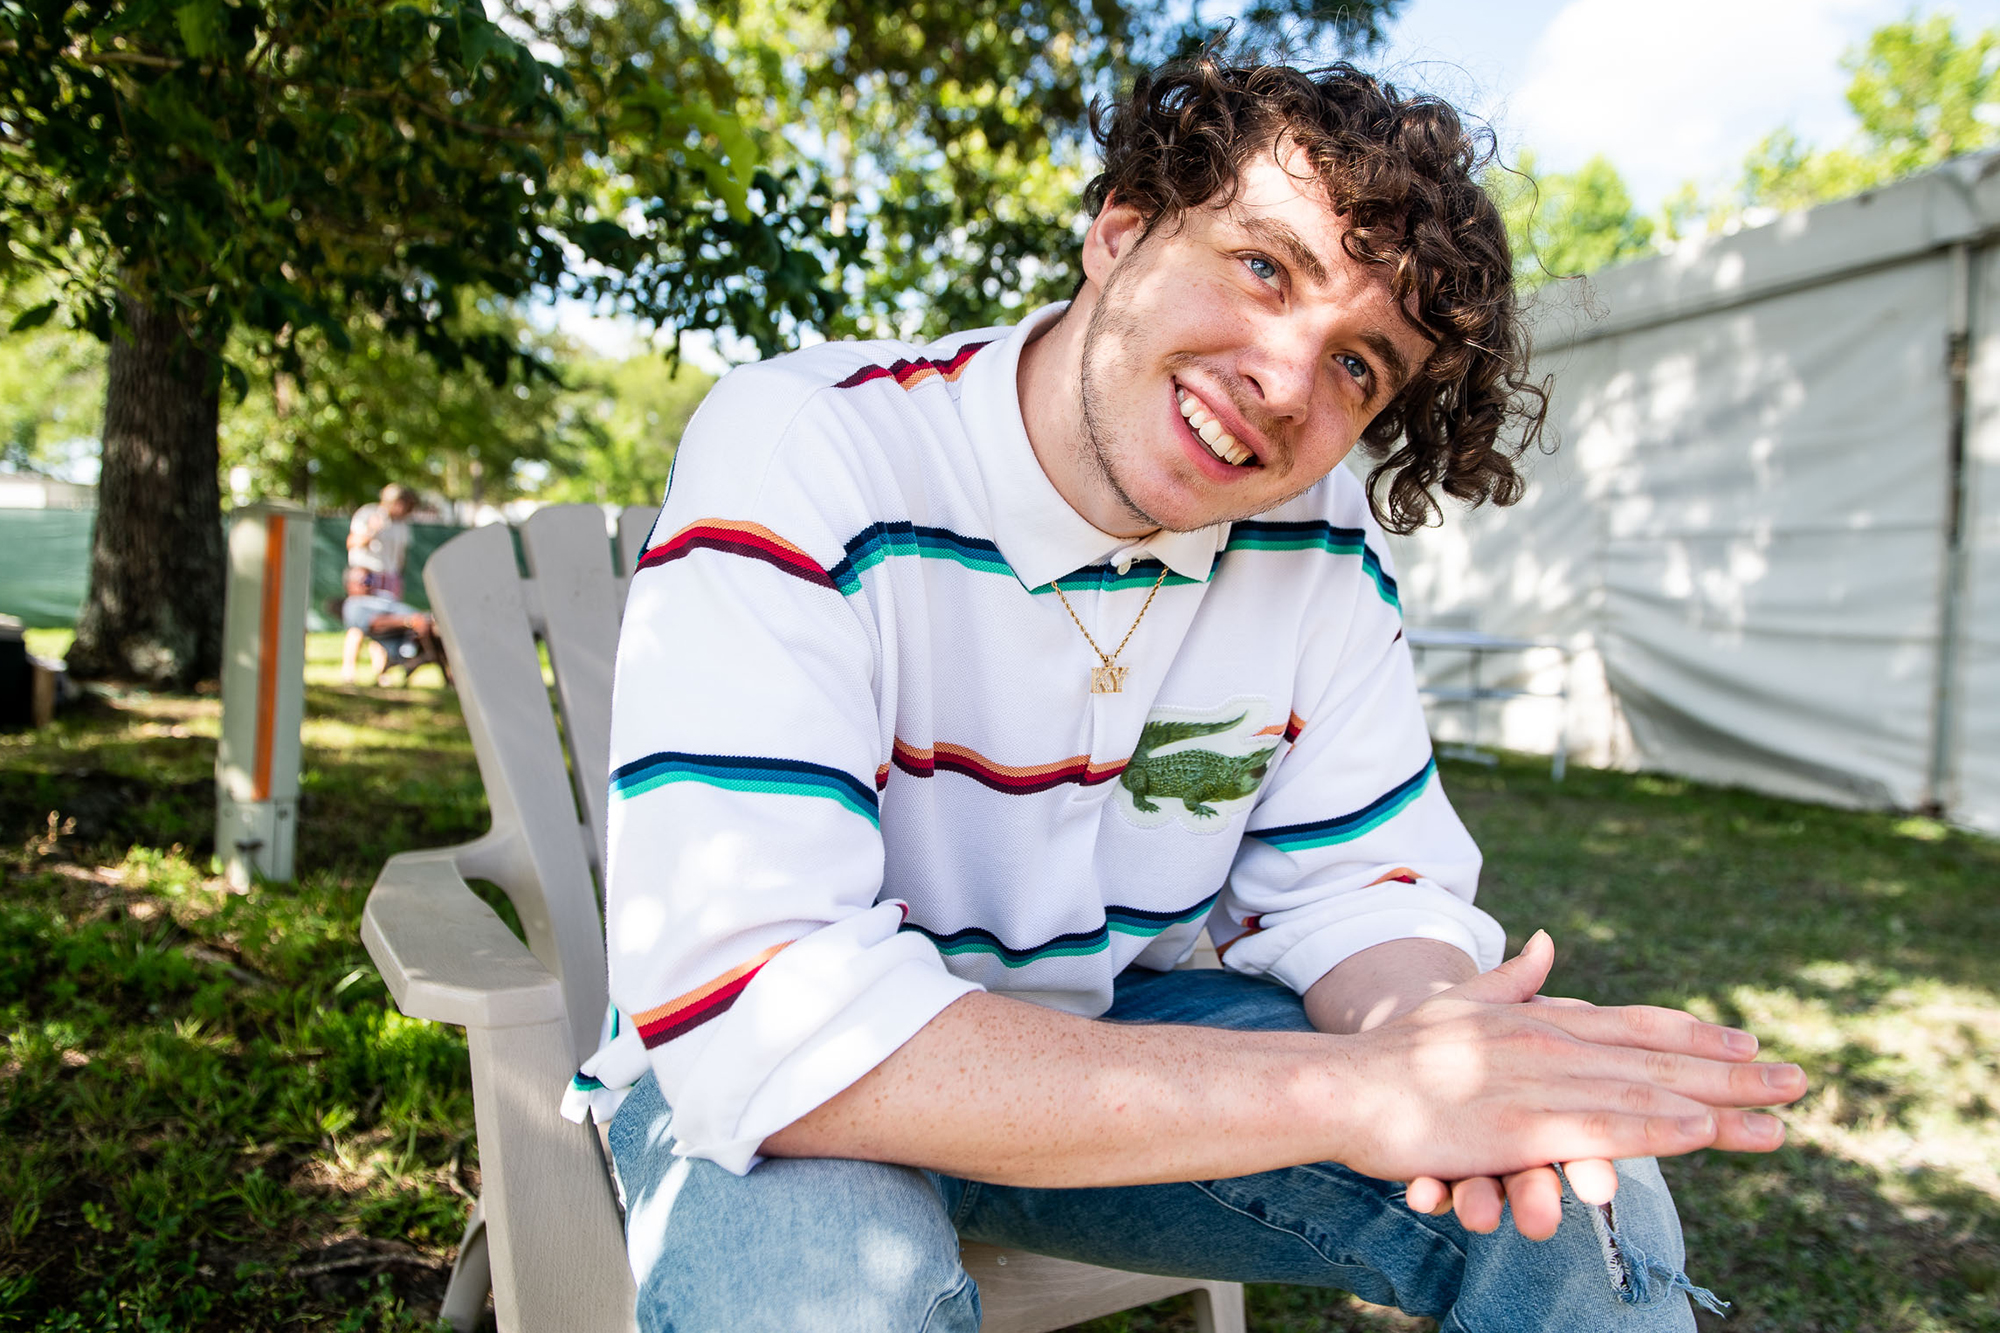 Jack Harlow Tour Dates 2021 2022 Jack Harlow Tickets And Concerts Wegow Netherlands